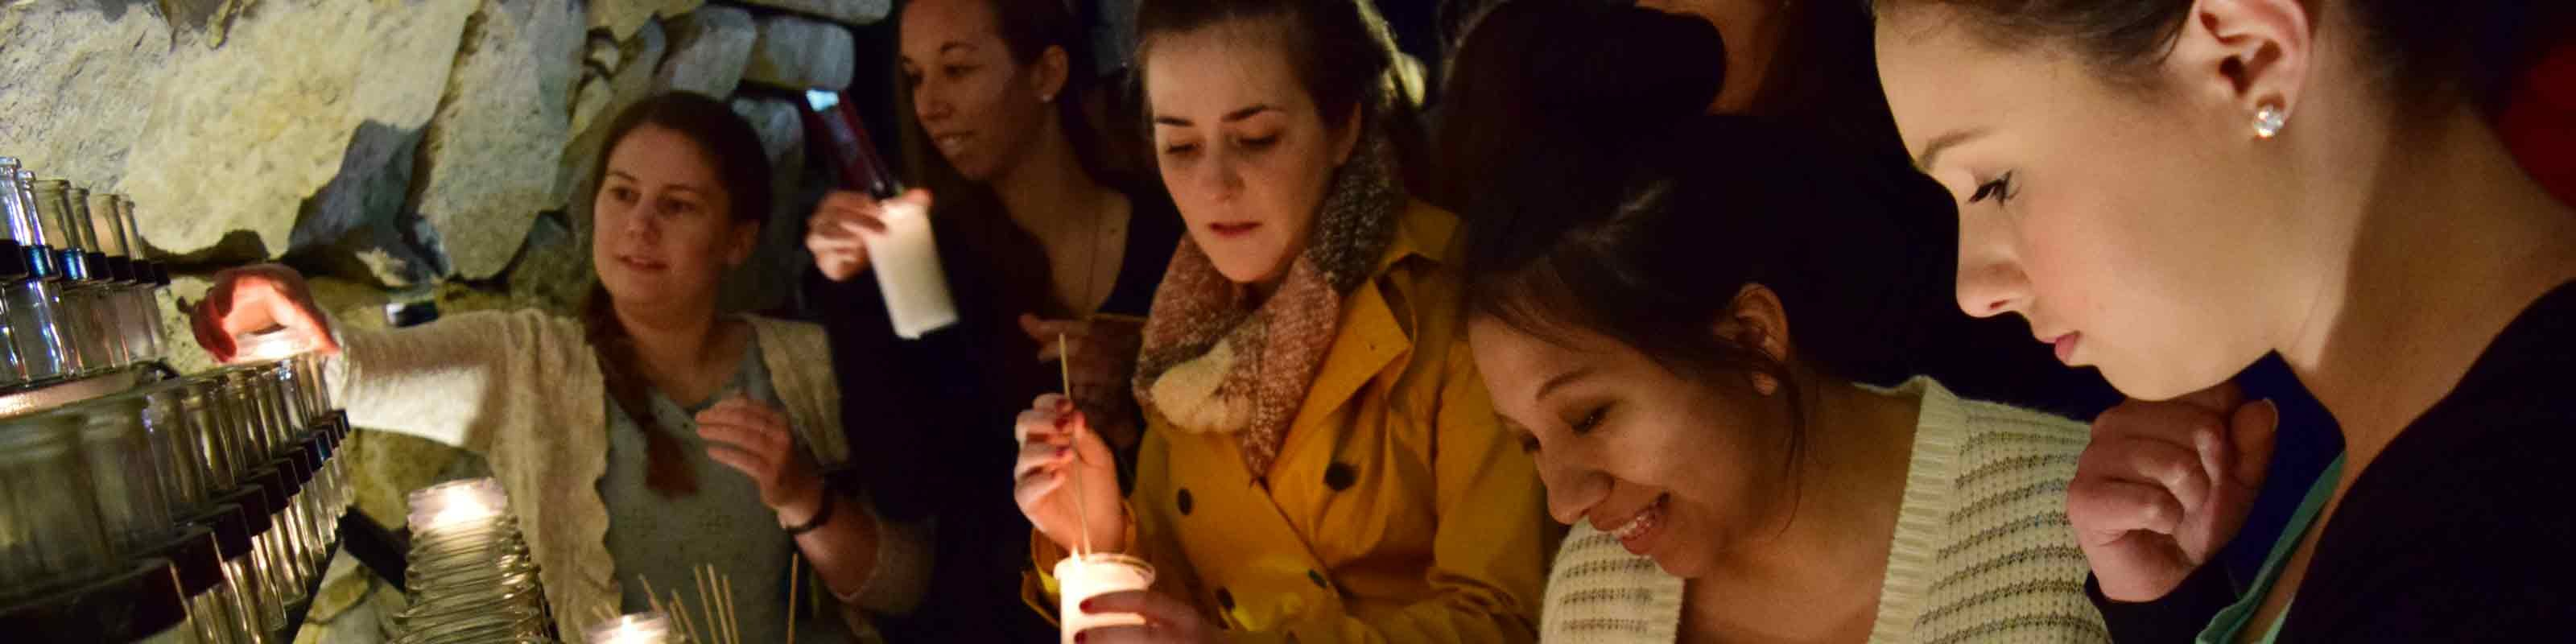 Students light candles at Mary's Grotto